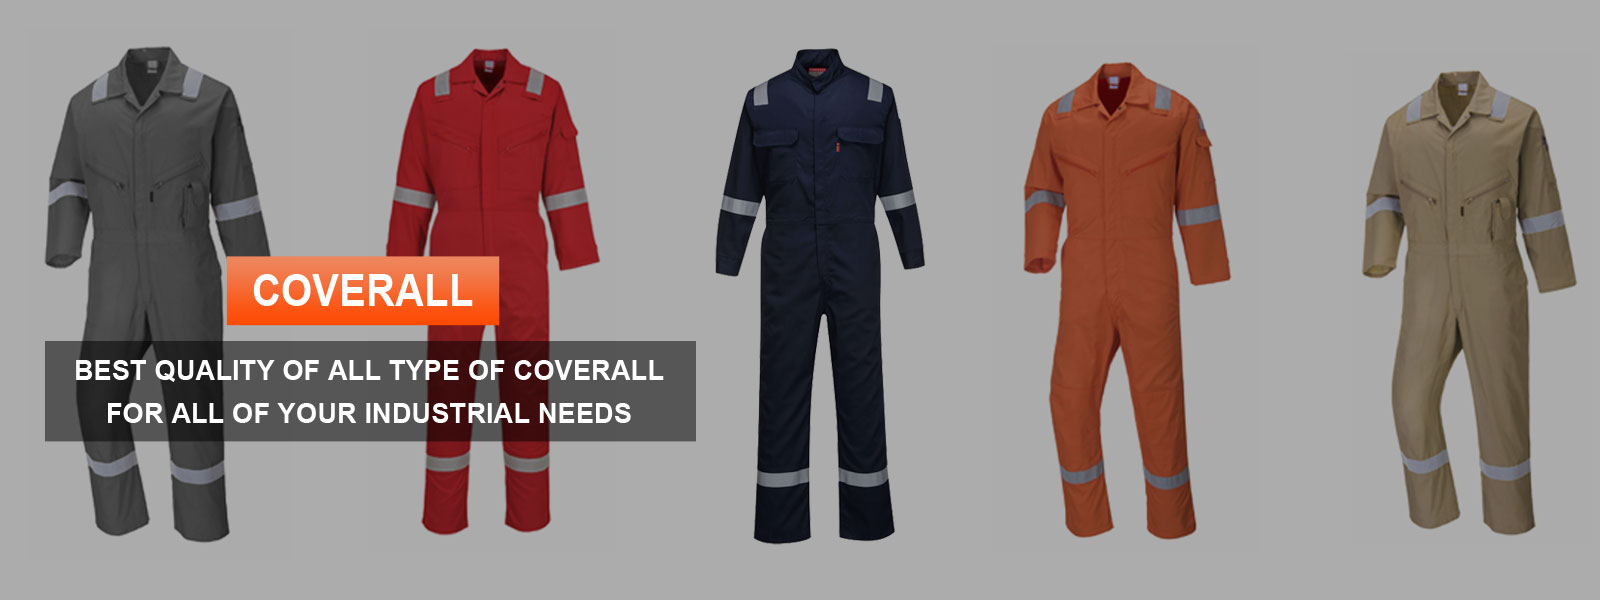 Coverall Manufacturers in Pimpri Chinchwad